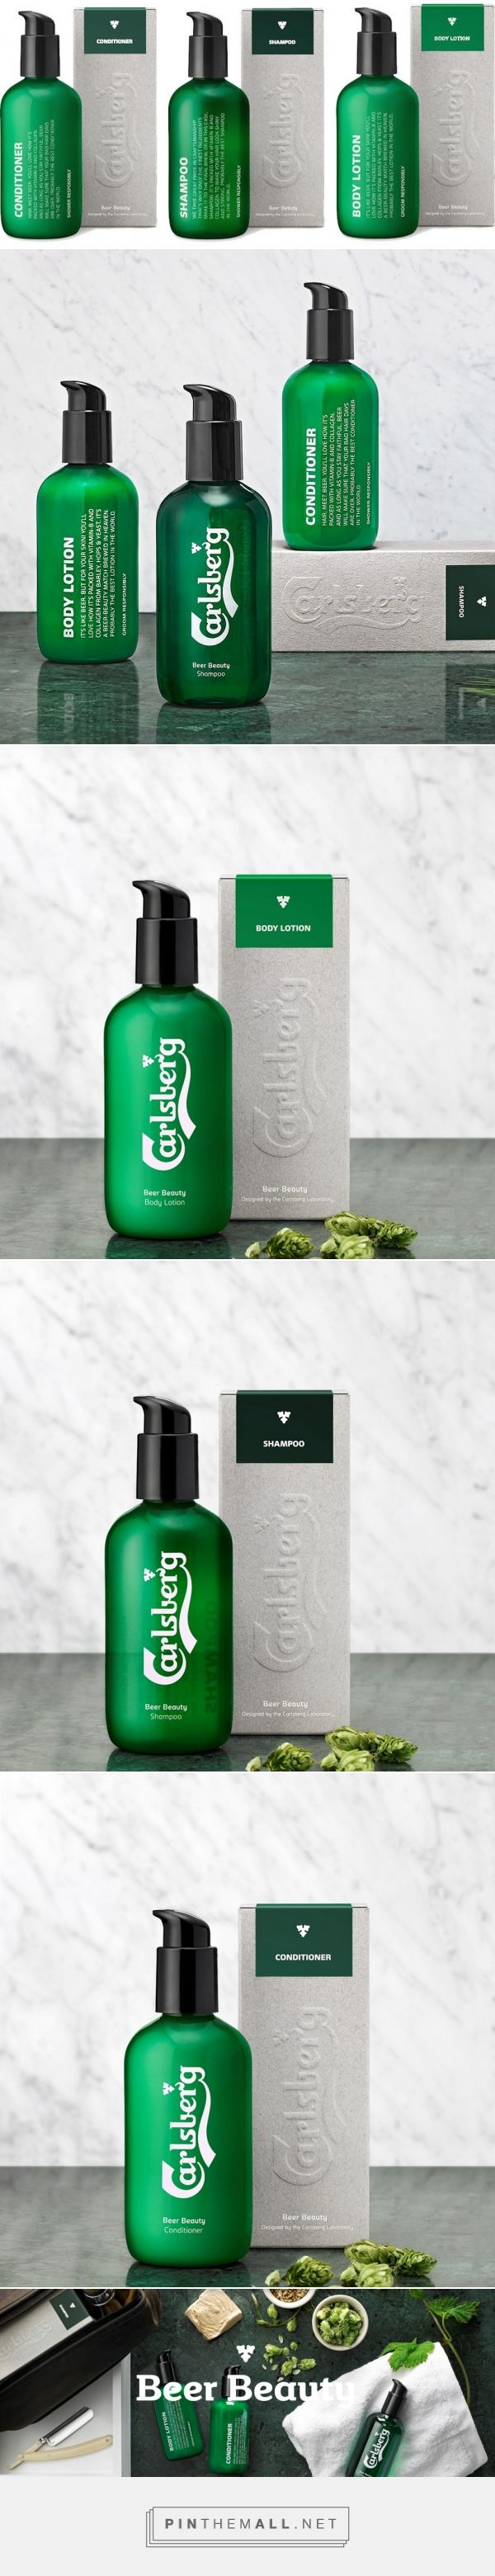 Carlsberg Beauty — The Dieline - Branding & Packaging - created via http://pinthemall.net